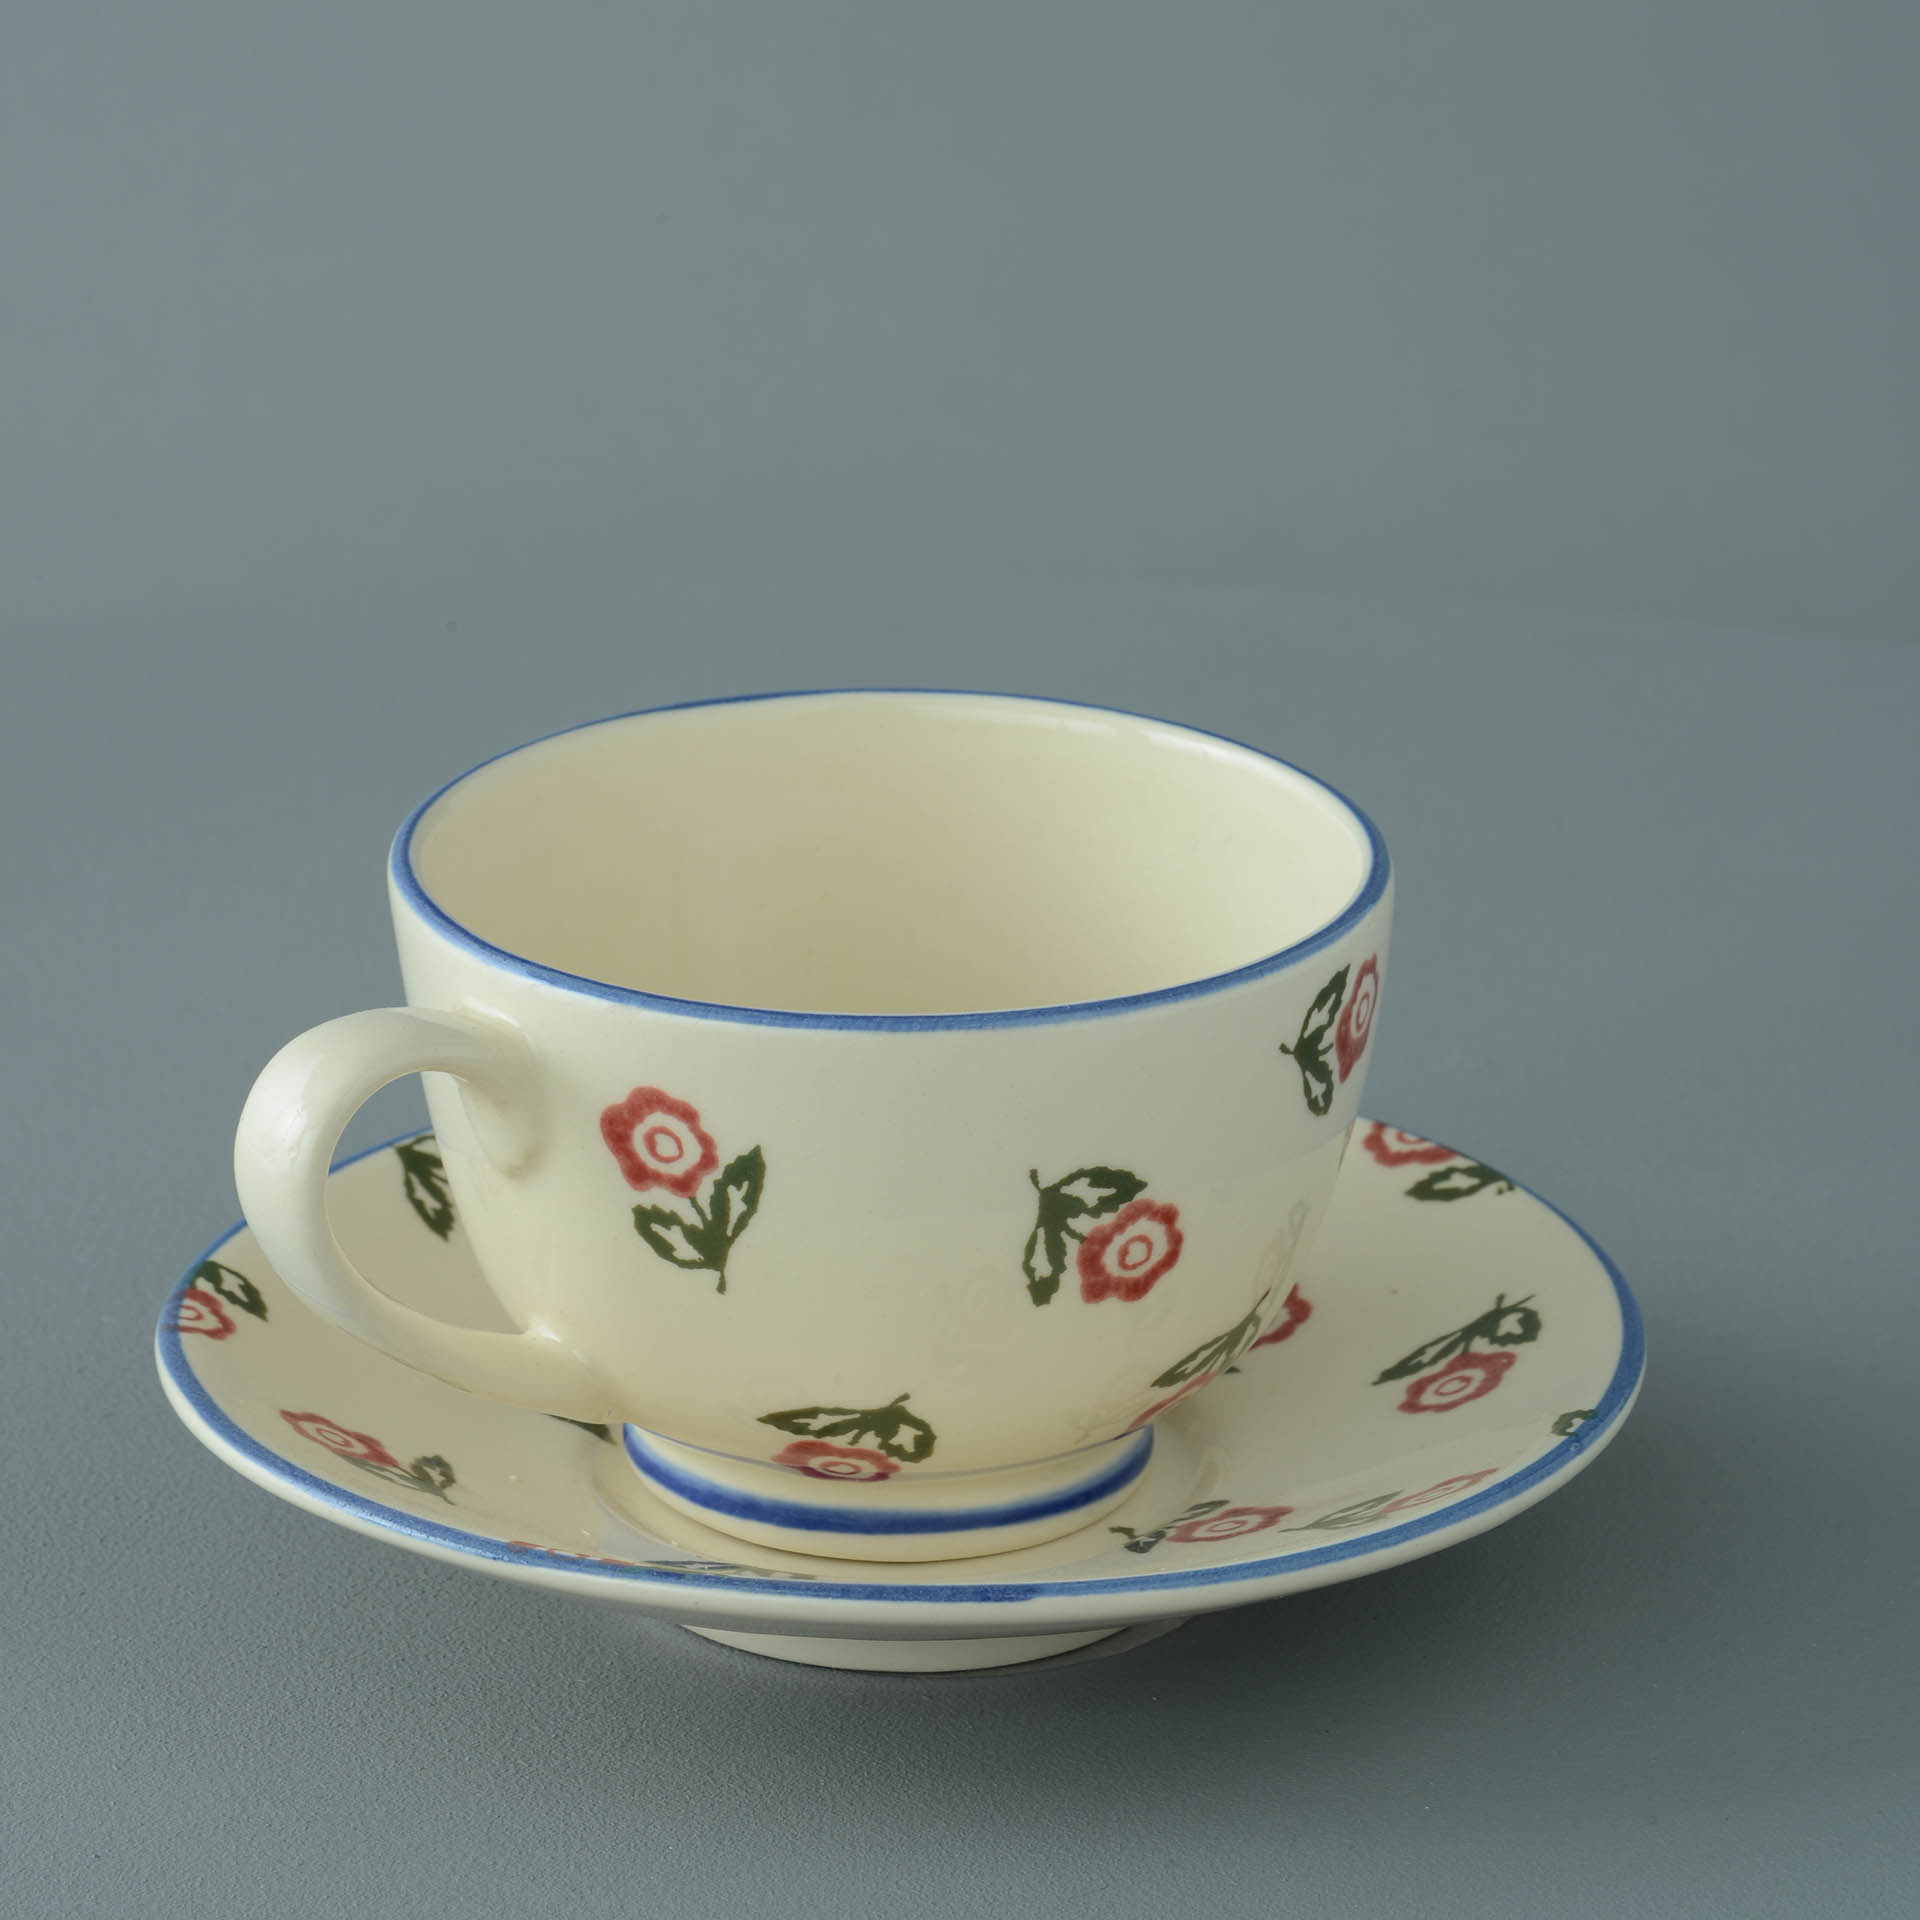 Scattered Rose Breakfast Cup and Saucer